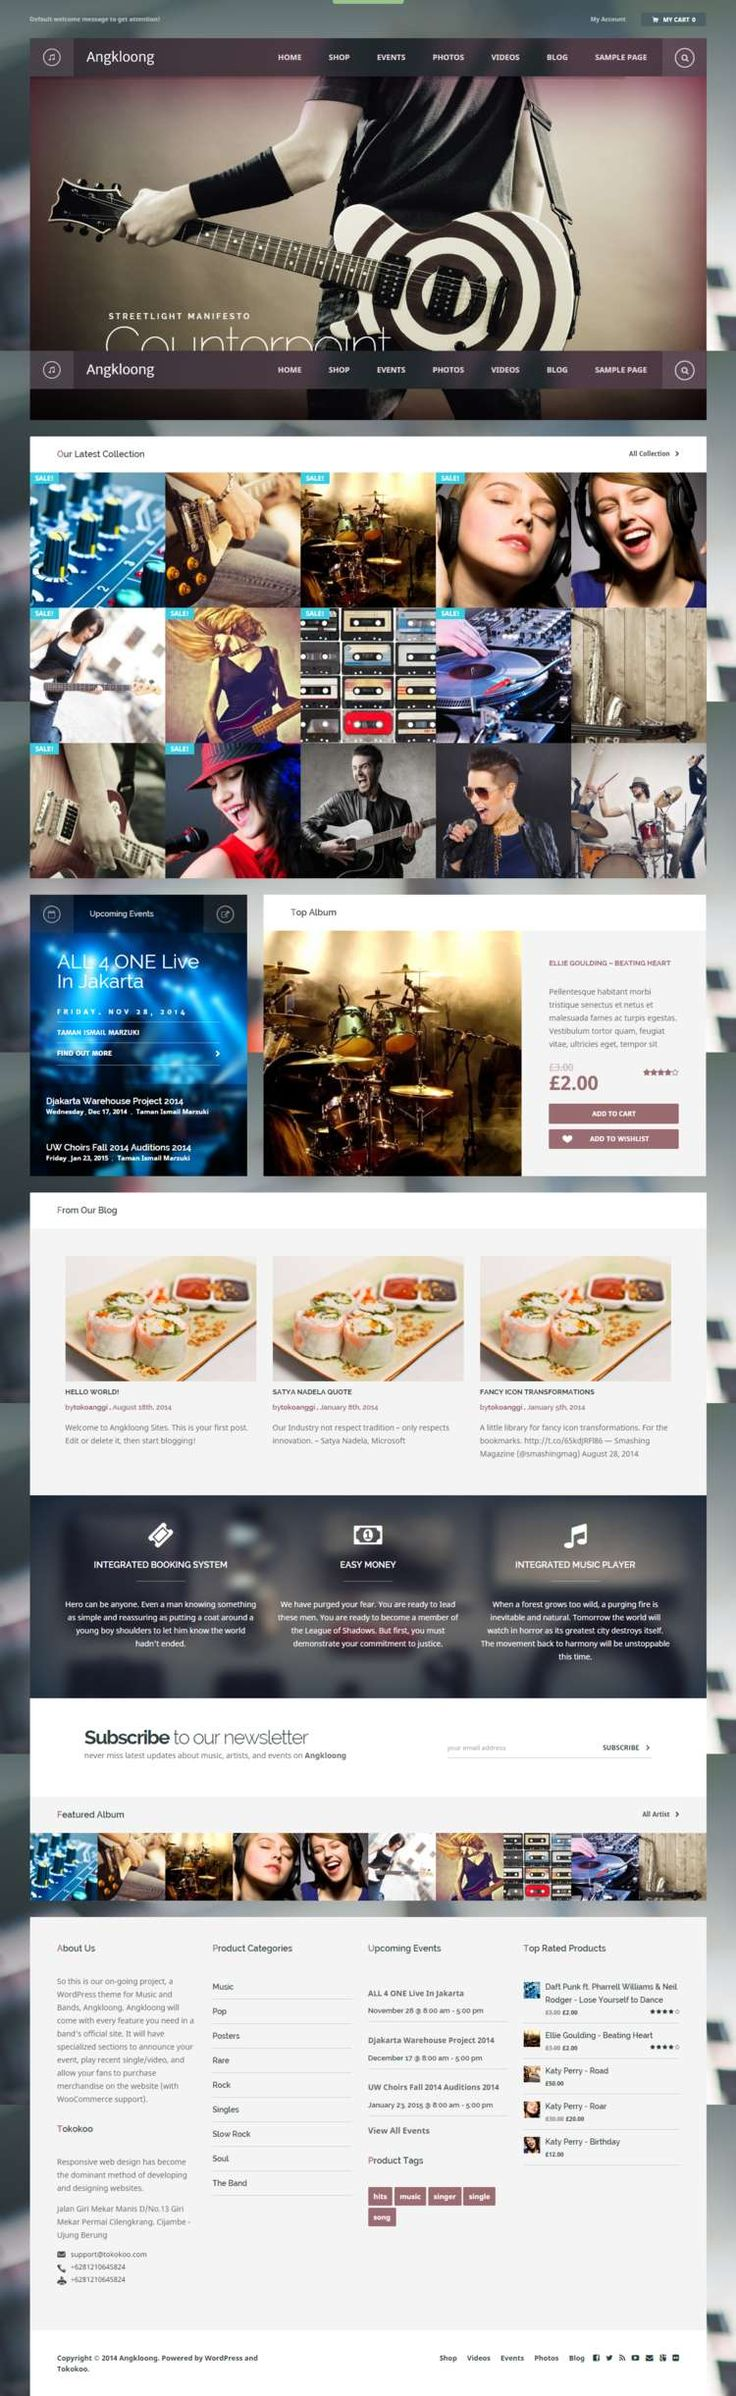 Angkloong WordPress music theme is the best Music & Events WooCommerce theme for musician and band official website with fresh design, extensive features and the ability to be customized to give your website a fascinating look.We build high quality themes with beautiful design, clean code, and up-to-date features.Your business certainly need a blog, and we've provided various post formats to help you communicate with your customers through blog.